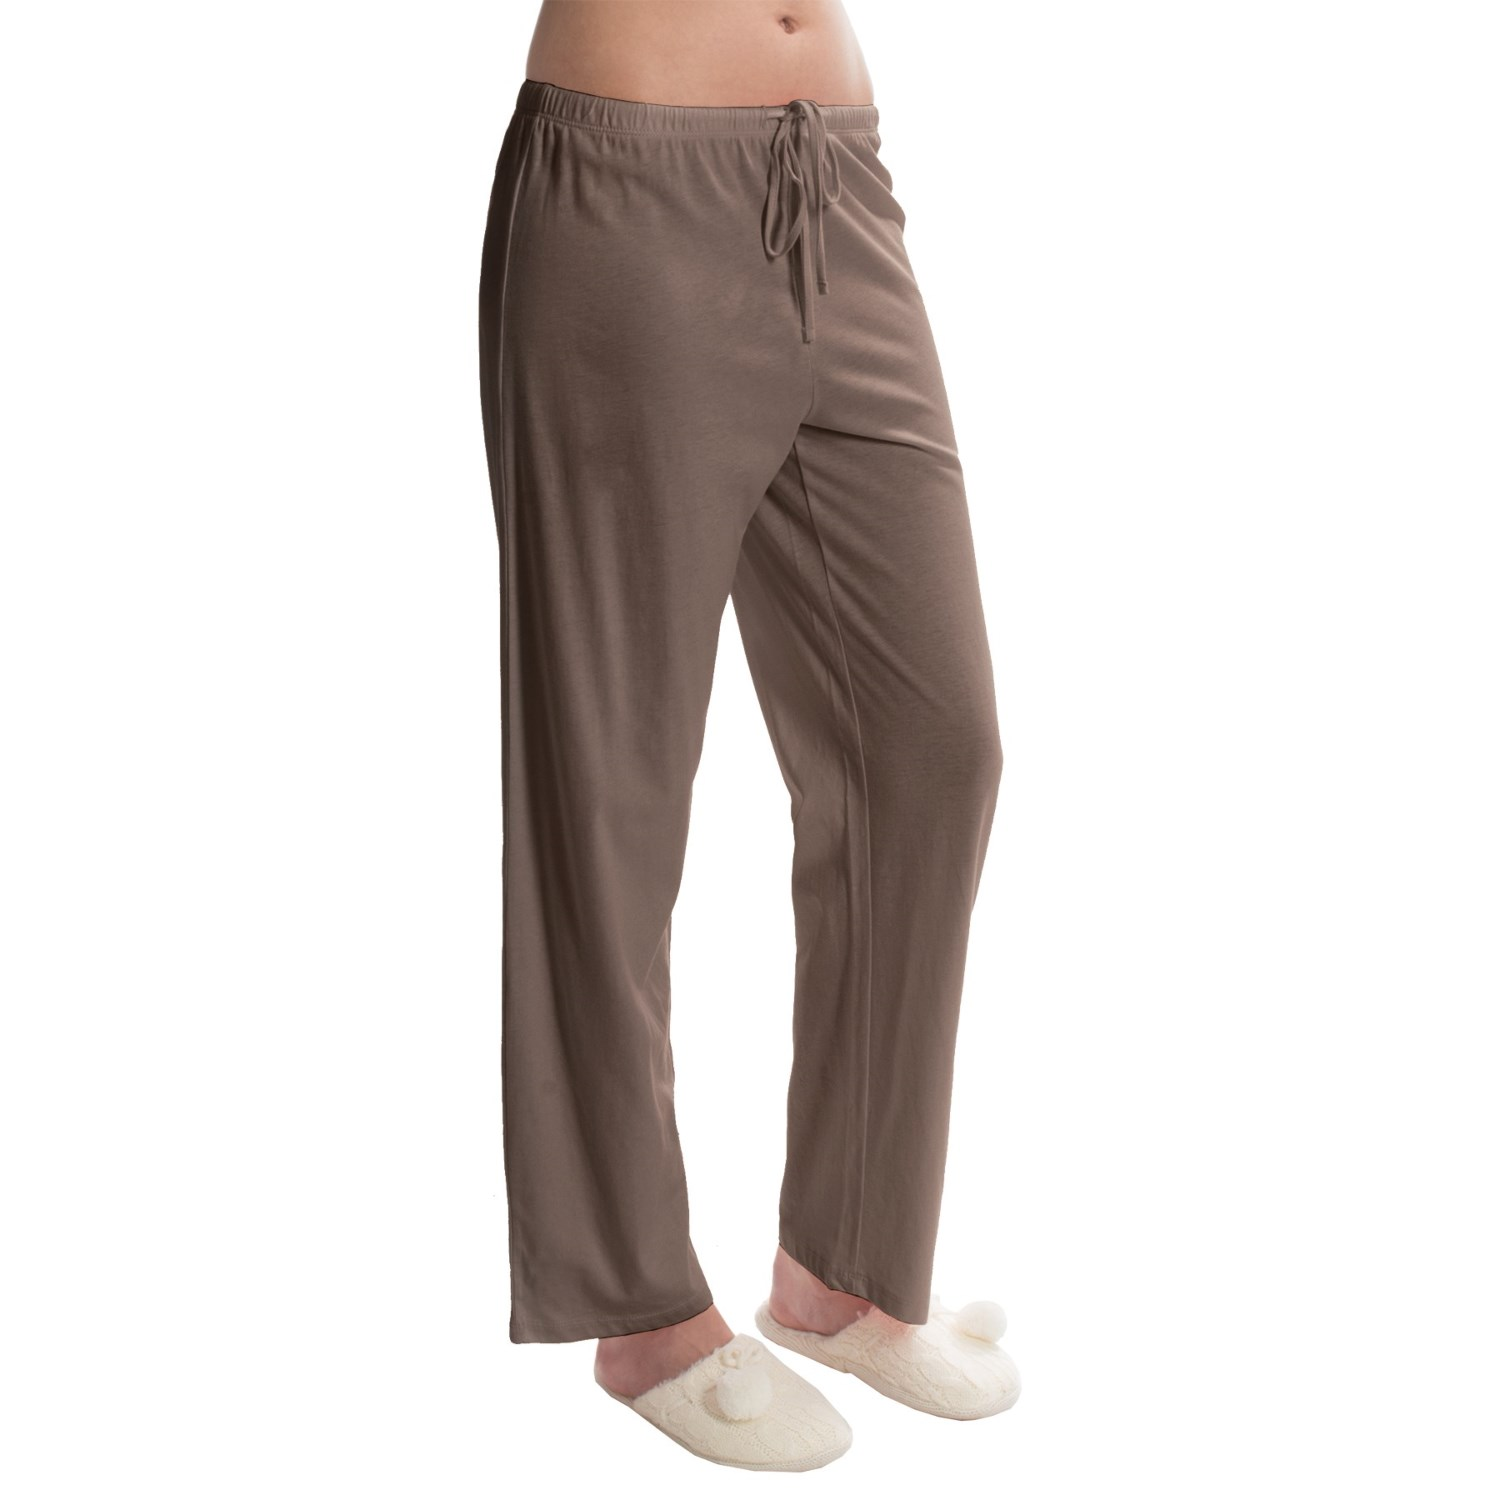 Excellent Information About StretchKnit Pants For Women